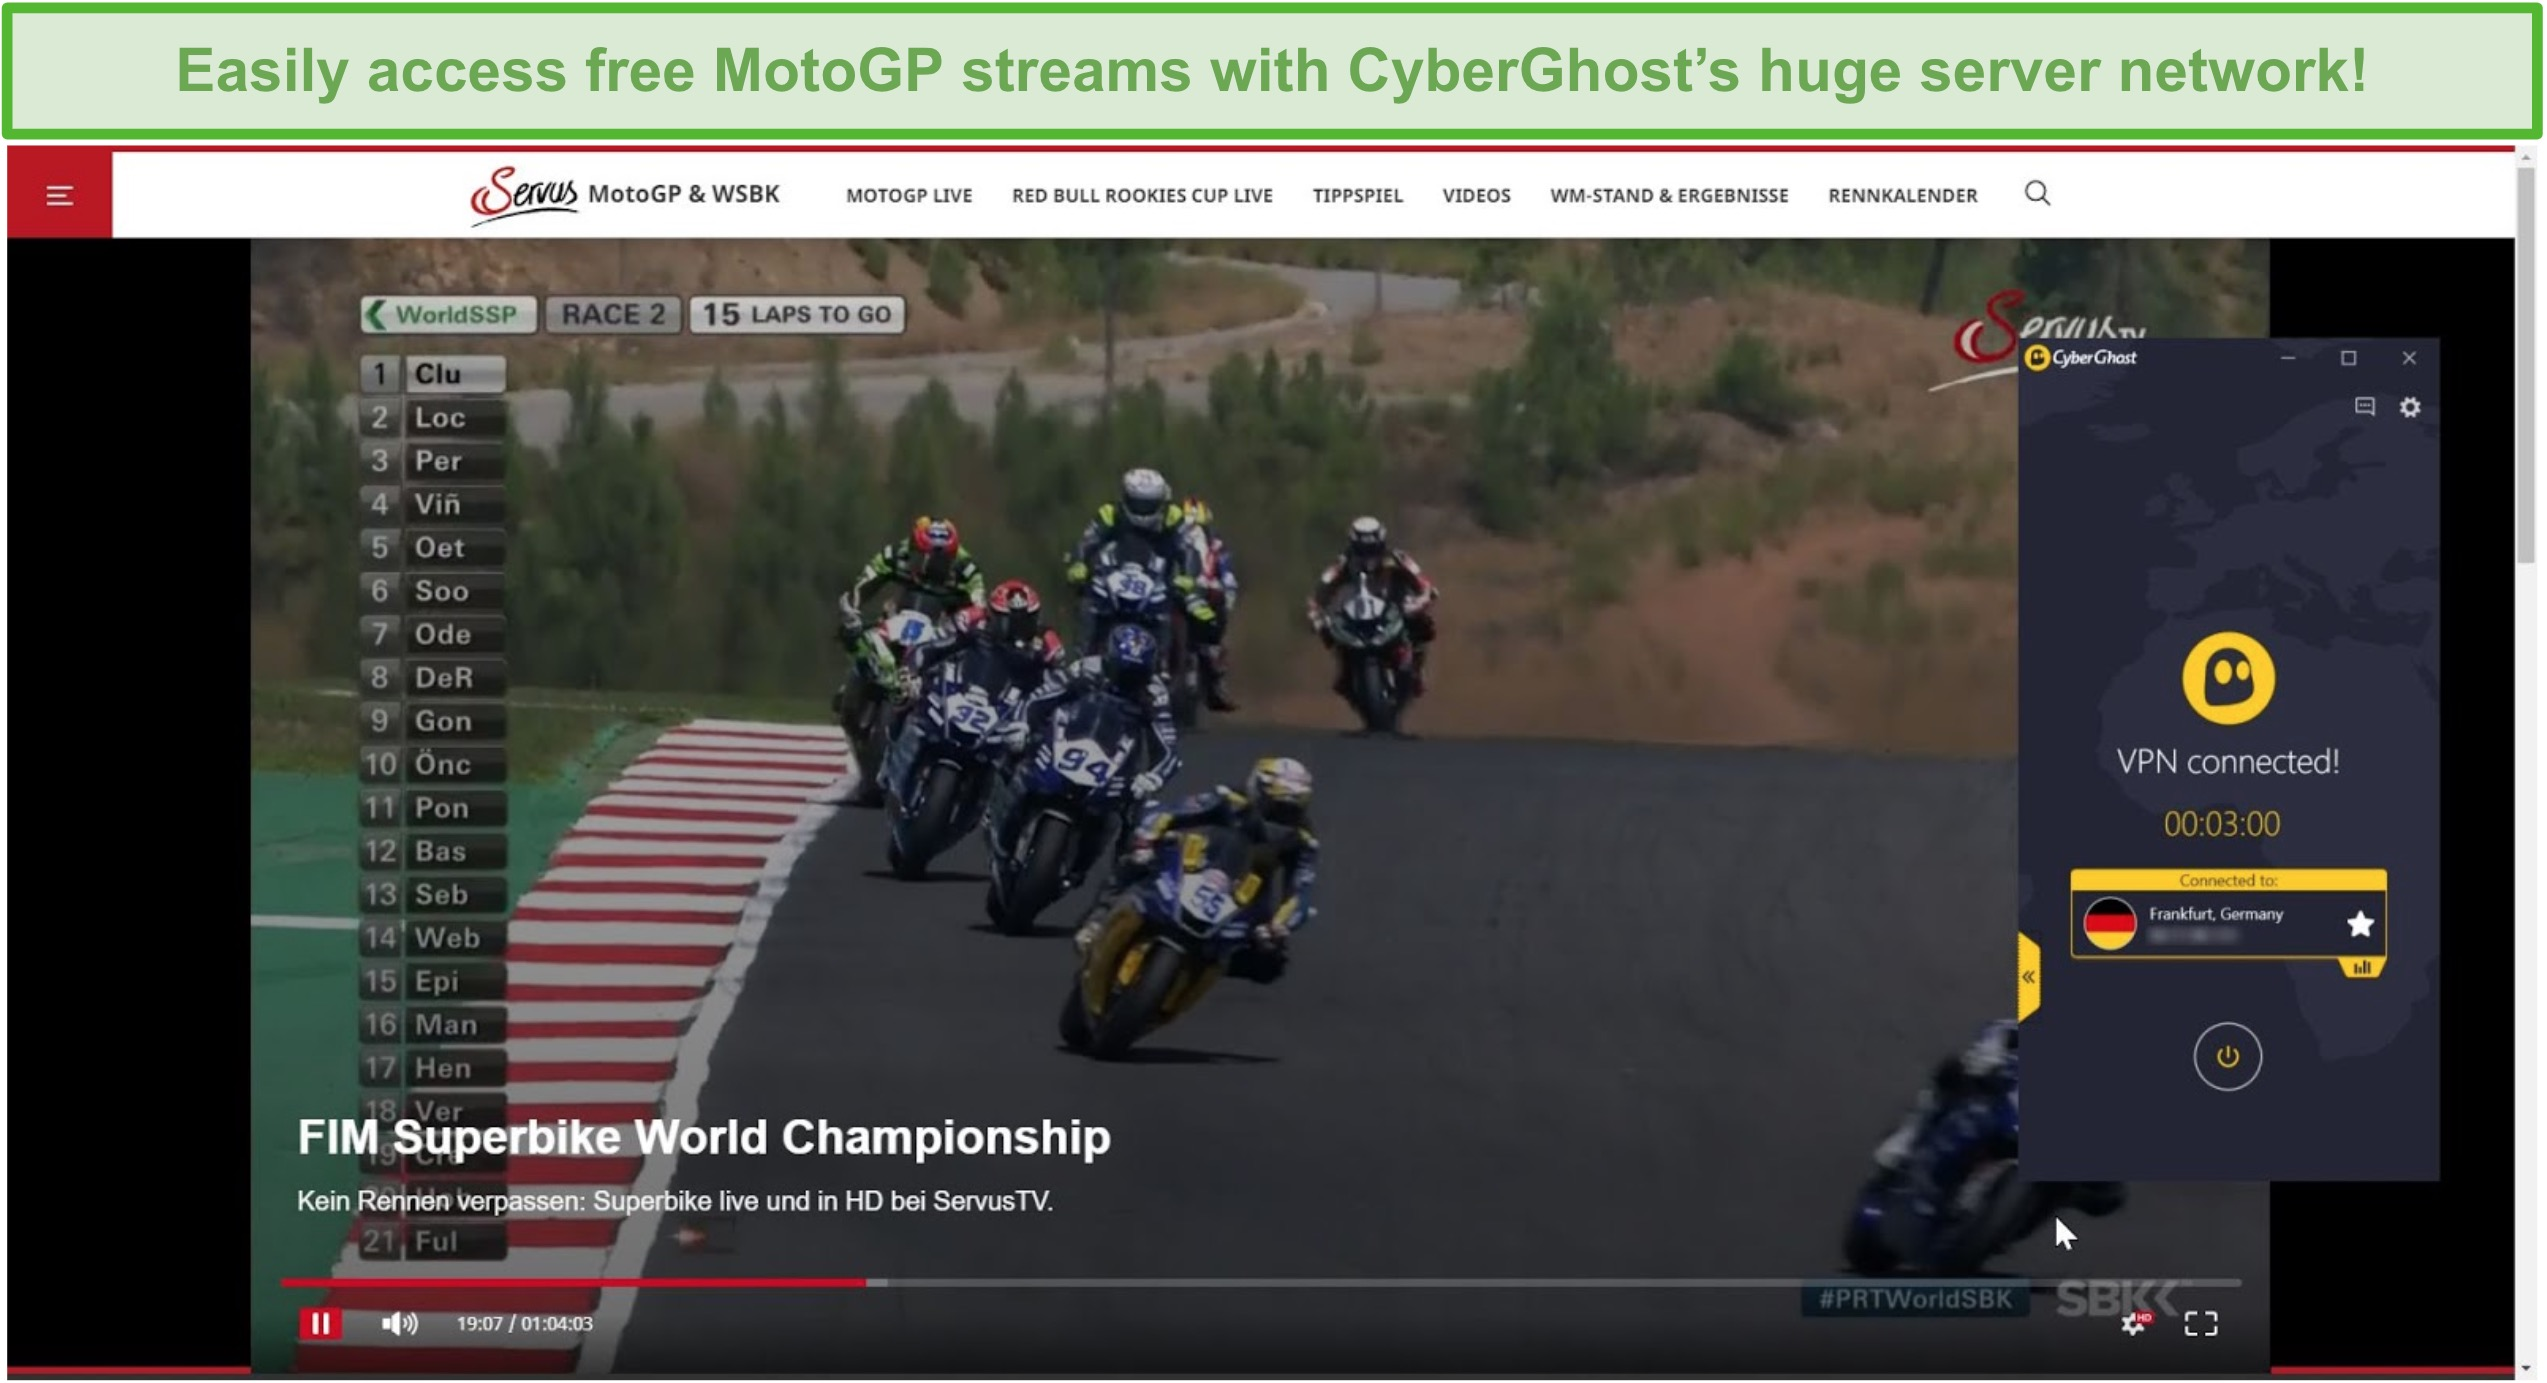 Screenshot of CyberGhost connected to a German server and unblocking a MotoGP stream on ServusTV.